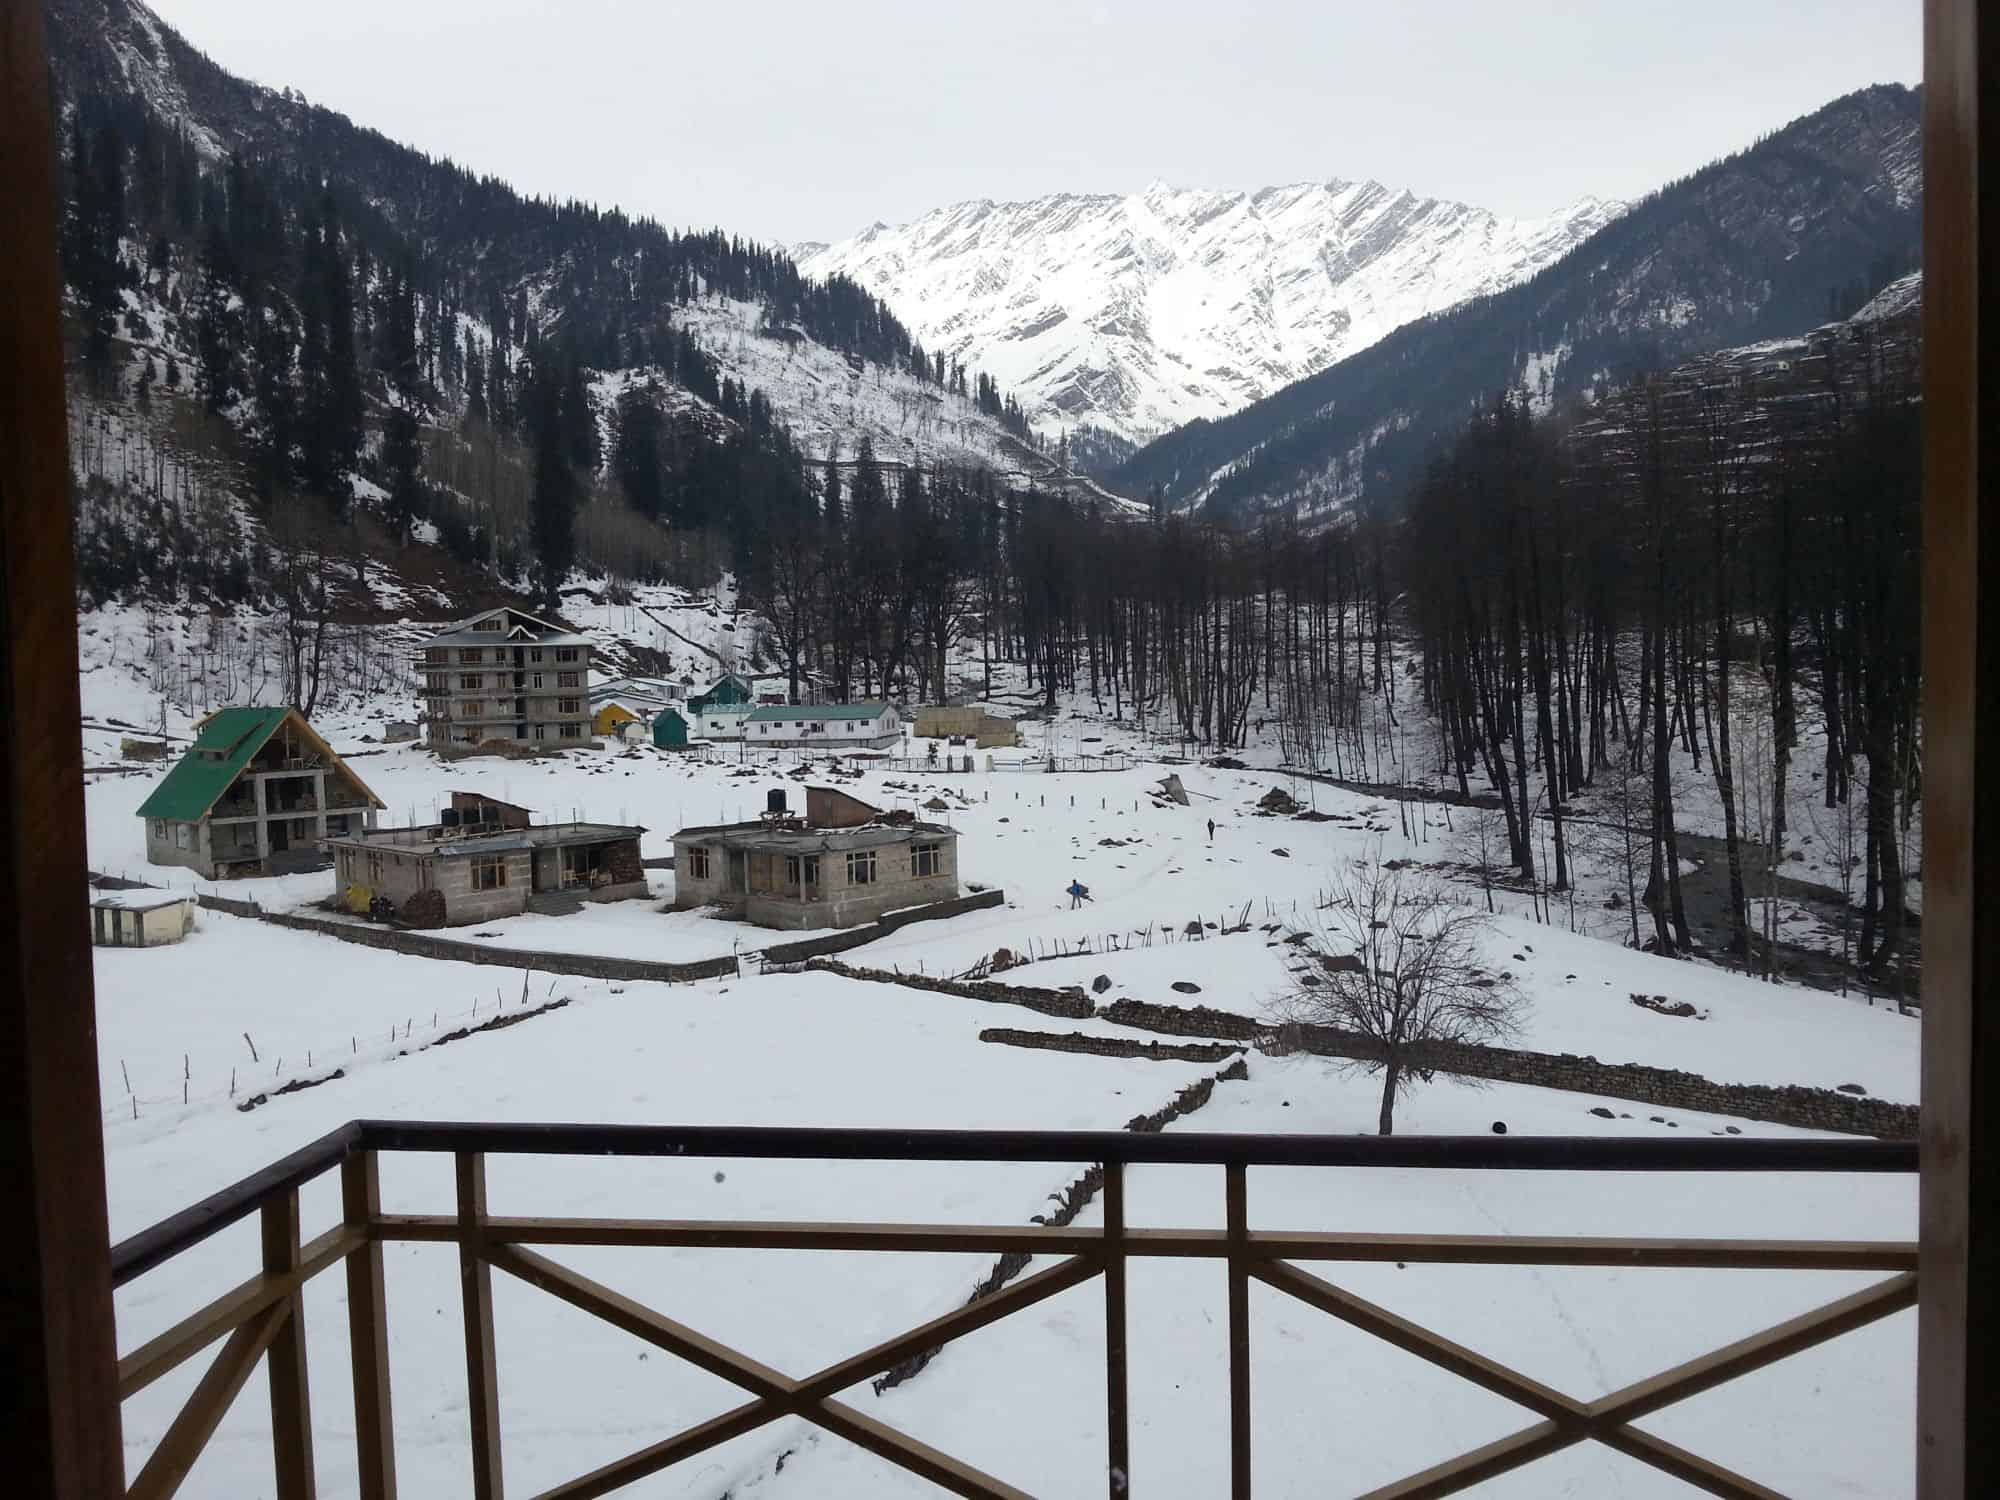 View from hotel room's balcony in Solang Valley